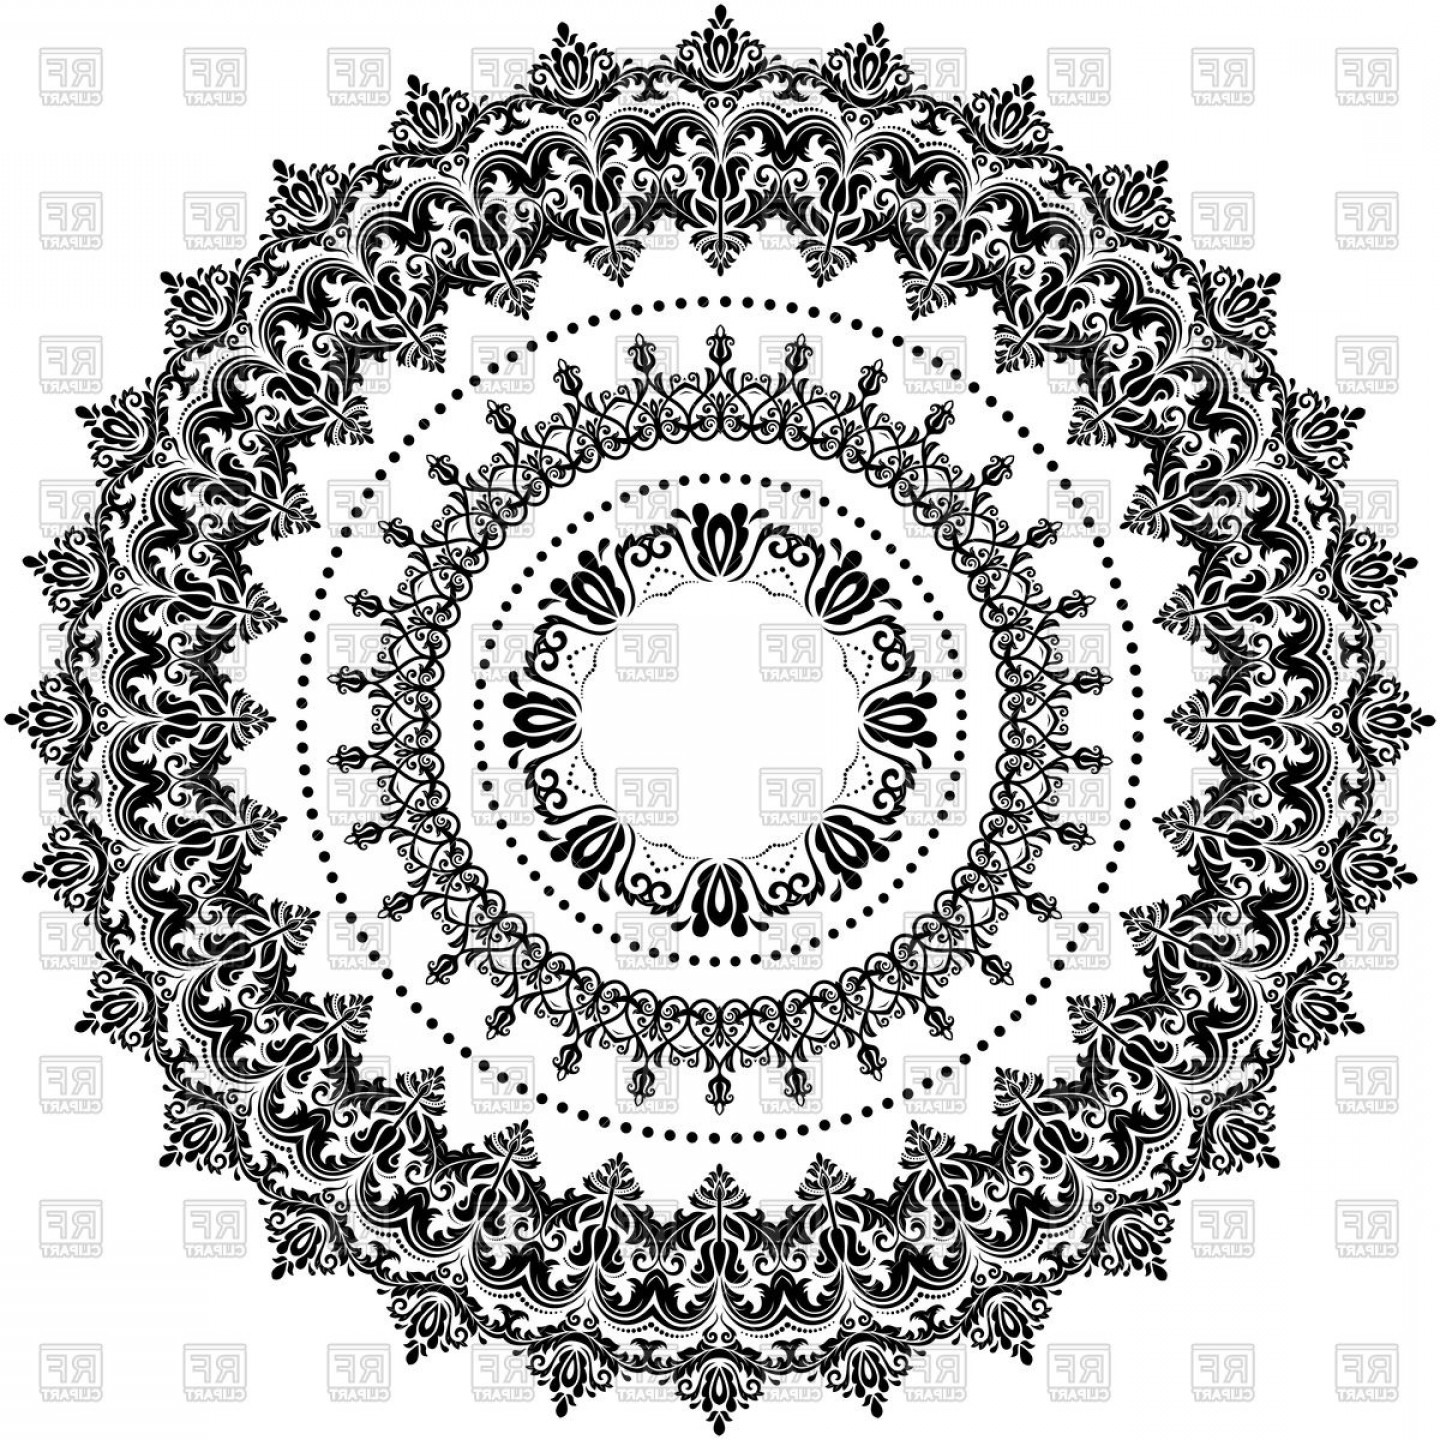 Black And White Circle Vector Graphics: Elegant Round Black And White Ornament Vector Clipart